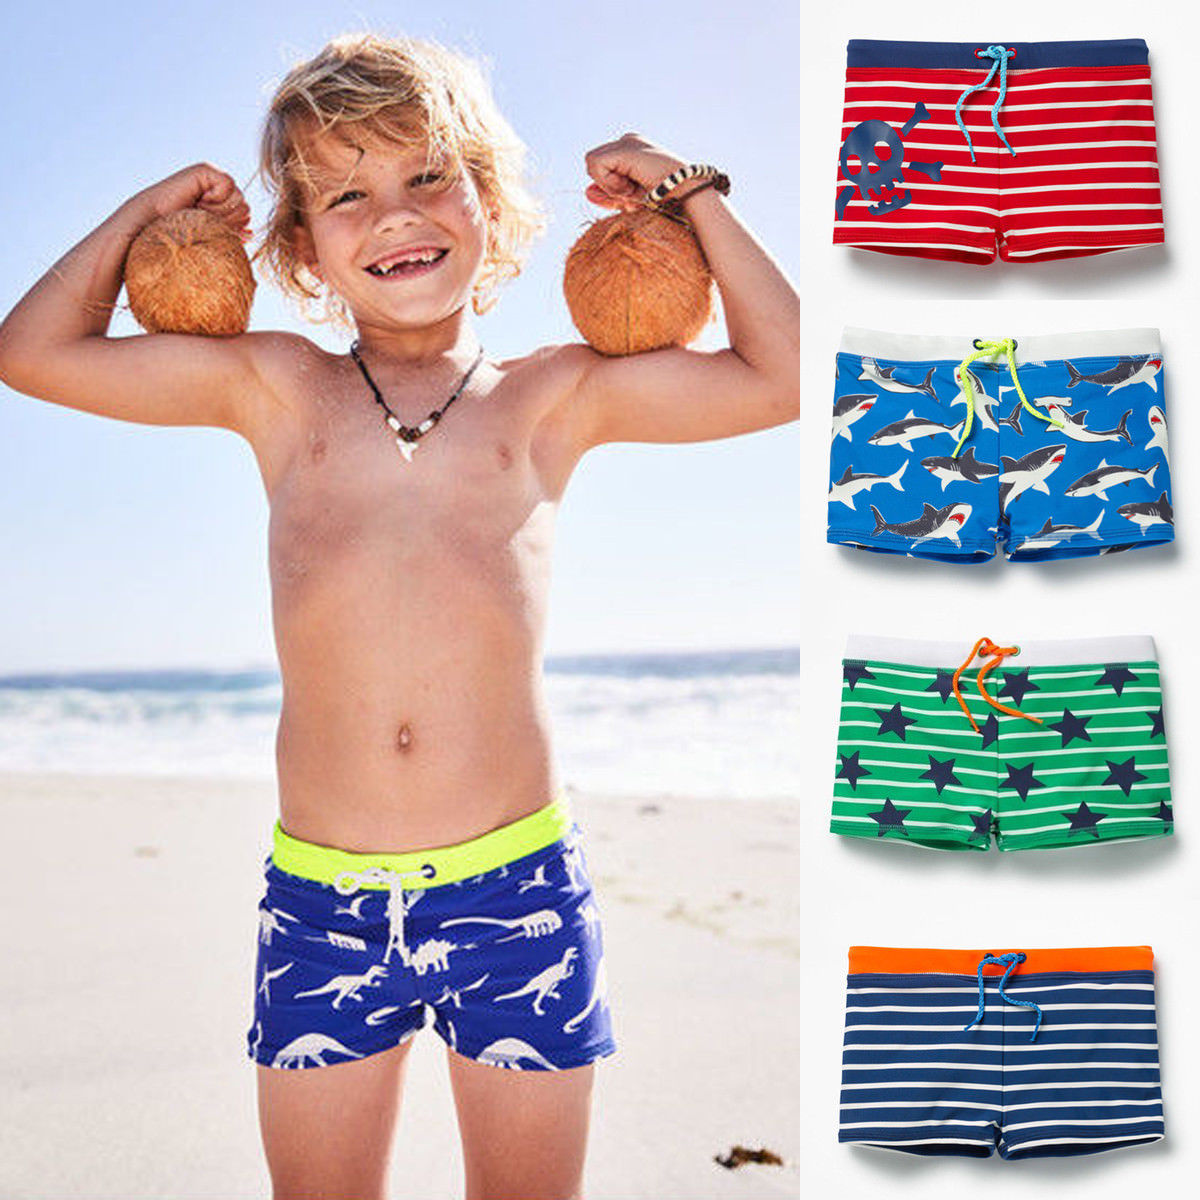 2019 One Piece Cool Handsome Toddler Boy Kid Swimming Shorts Swimwear Summer Bathing Suit Beach Swim Trunks Striped Star Shorts